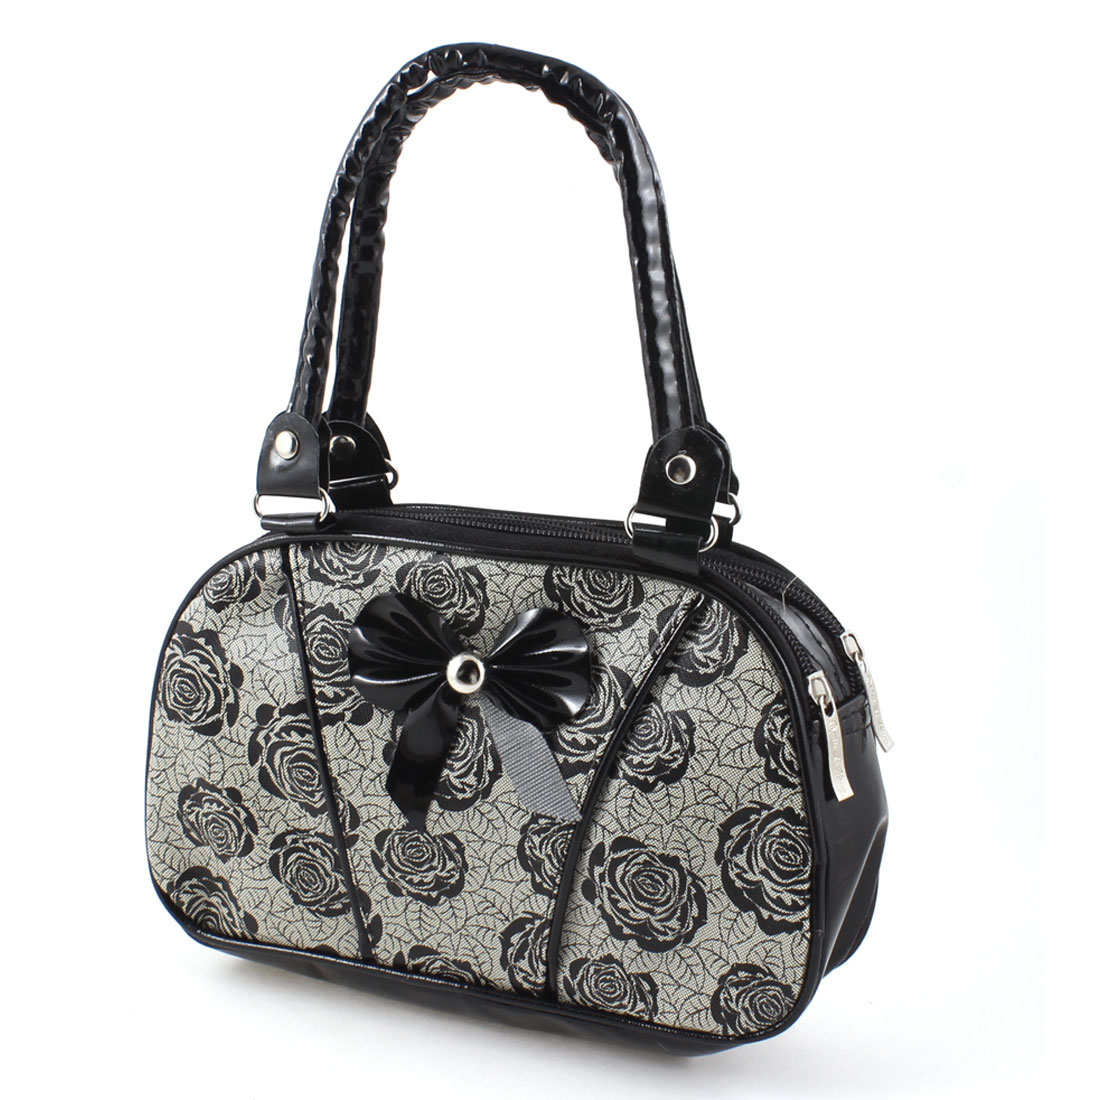 Lady Floral Pattern Bowknot Decor Black Beige Faux Leather Zipper Closure Change Purse Handbag